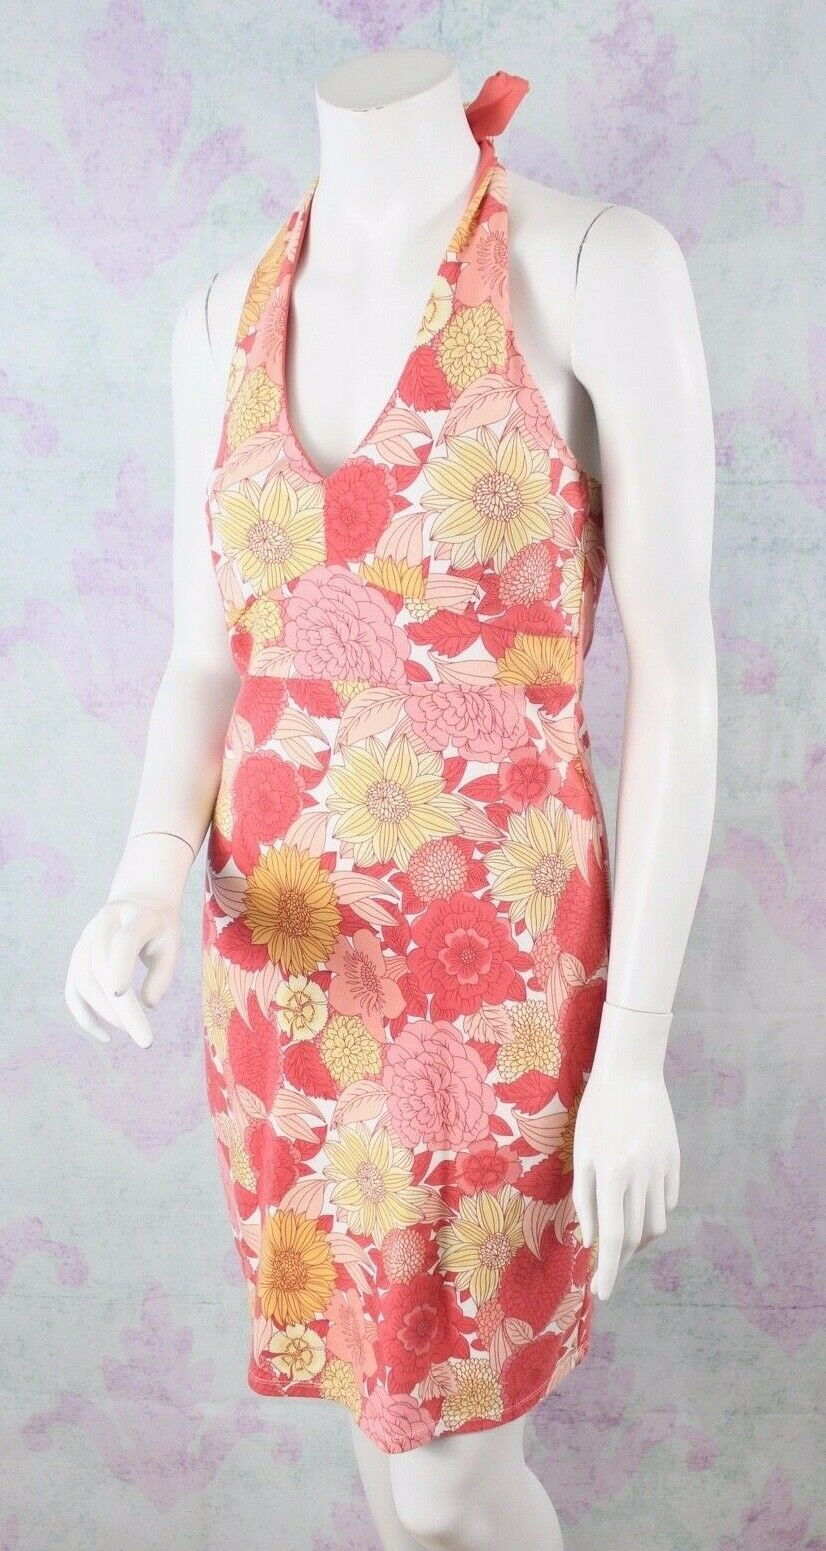 Ann Taylor LOFT Size 2 Orange Retro Floral Print Stretch Cotton Halter Sun Dress